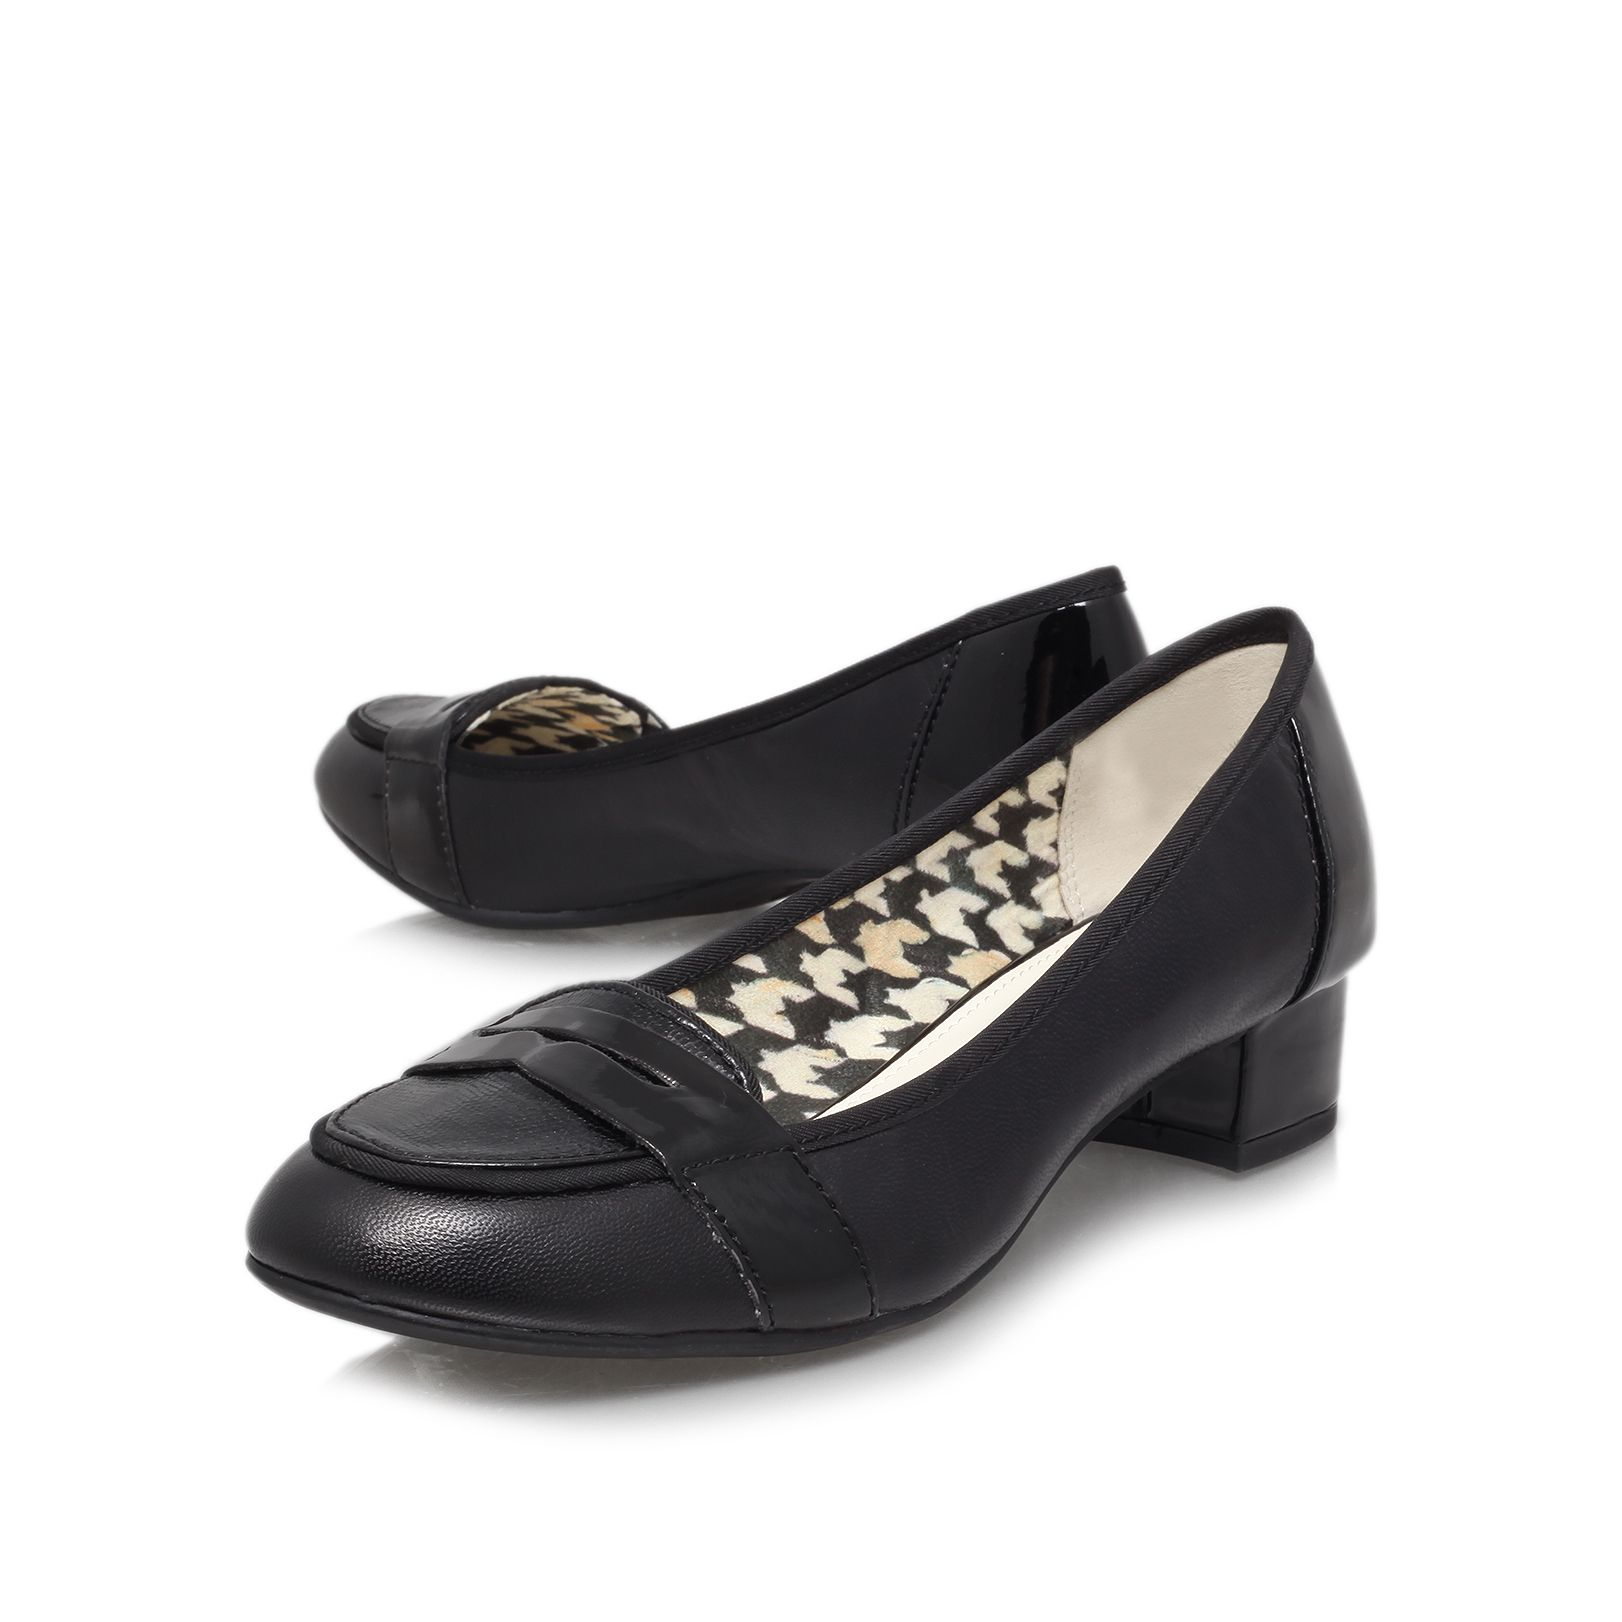 Magdha low heeled court shoes